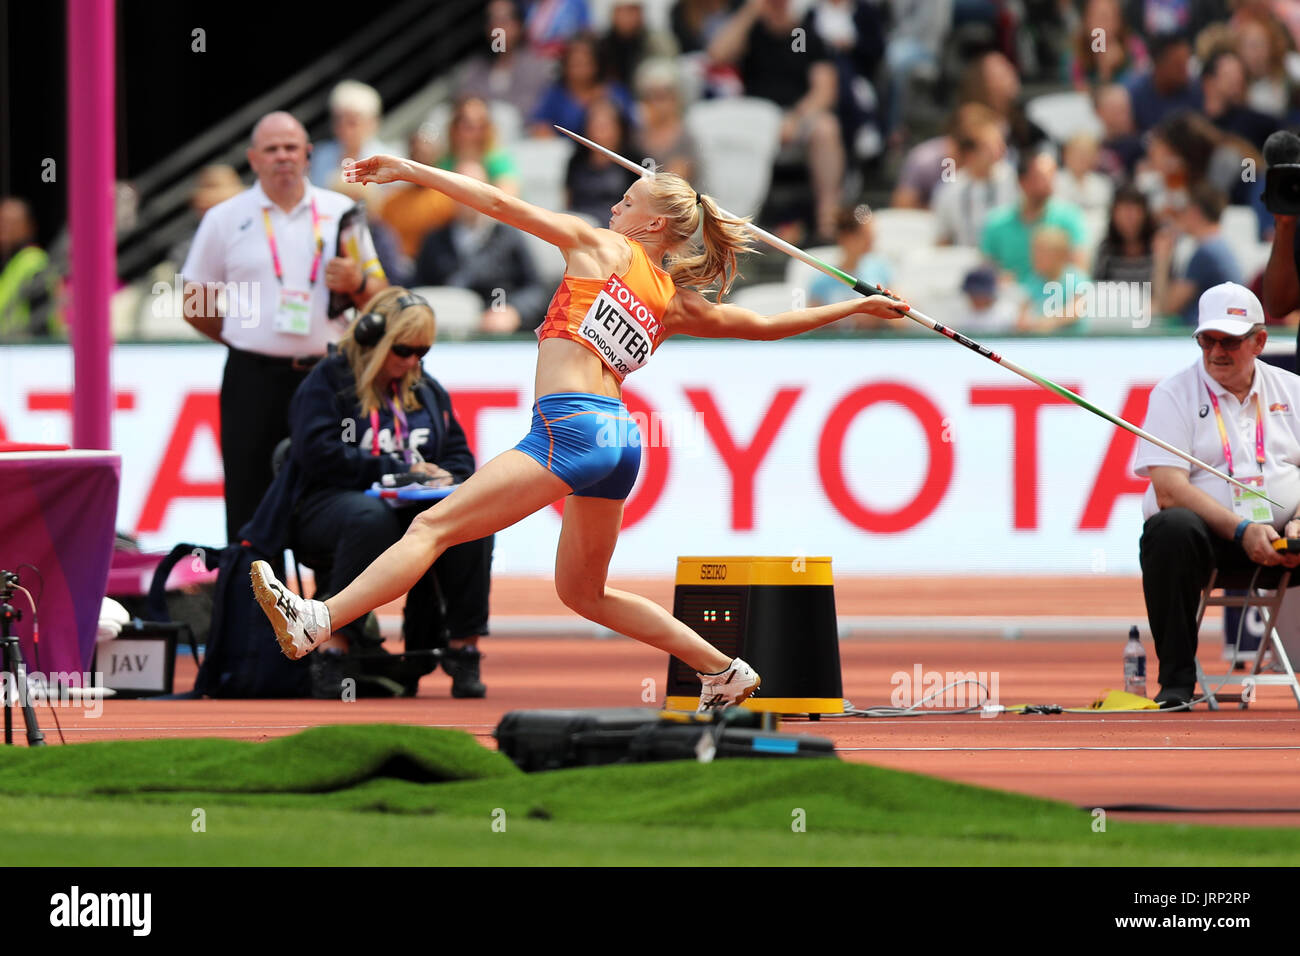 London, UK. 6th August, 2017. Anouk VETTER of the Netherlands competing in the Heptathlon Javelin throw at the 2017, IAAF World Championships, Queen Elizabeth Olympic Park, Stratford, London, UK. Credit: Simon Balson/Alamy Live News Stock Photo